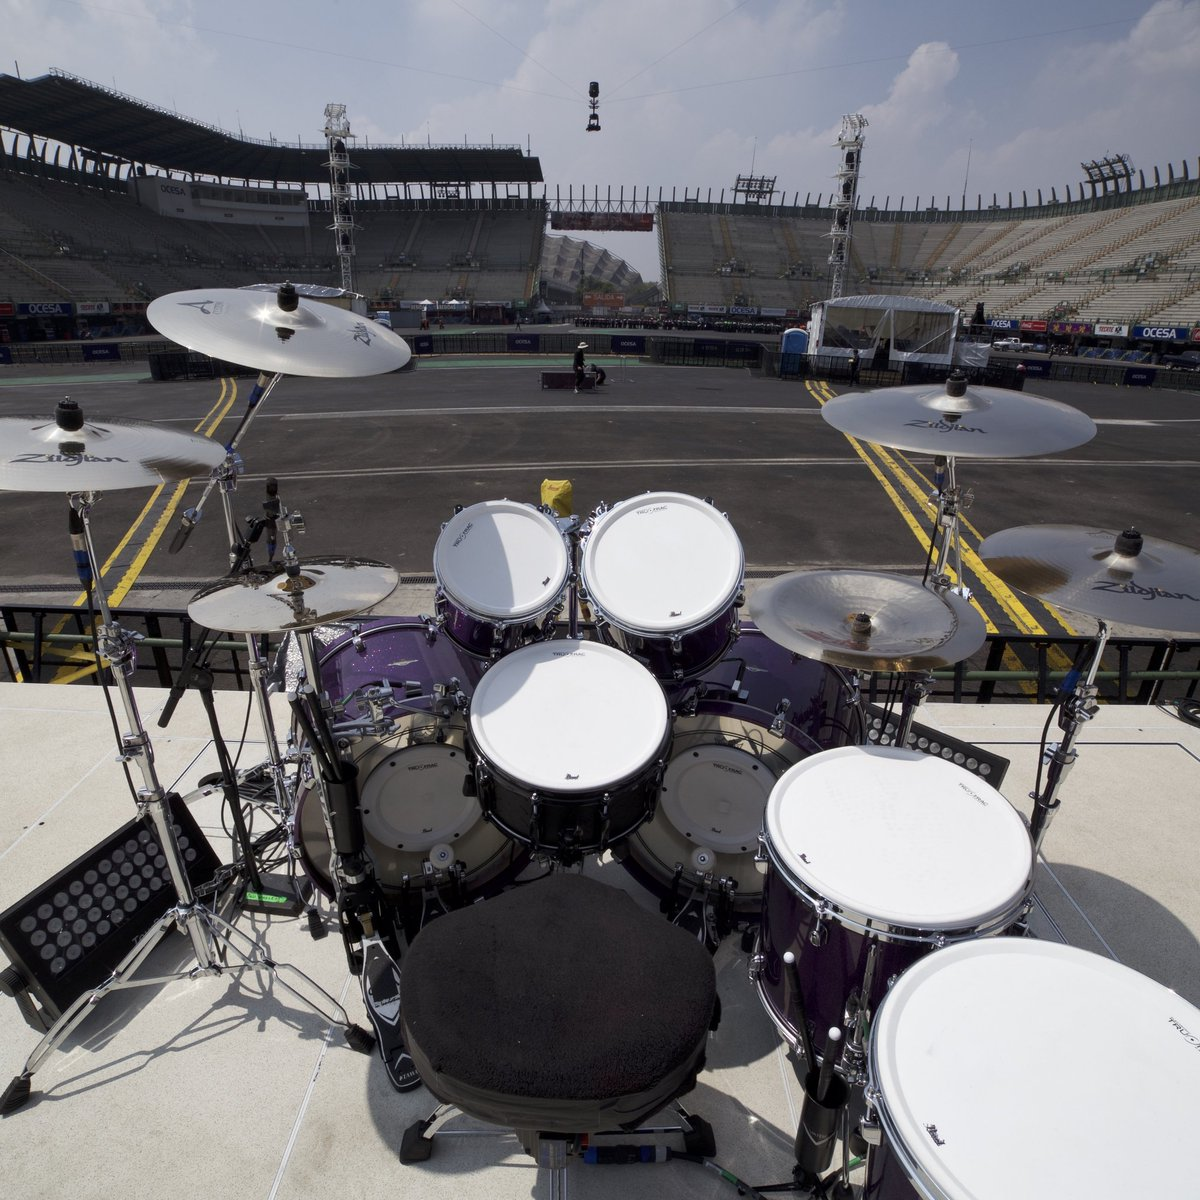 Metallica On Twitter Snake Kit Ready For The Final Show Here In Mexico MetInMexico Zildjian Worldwired